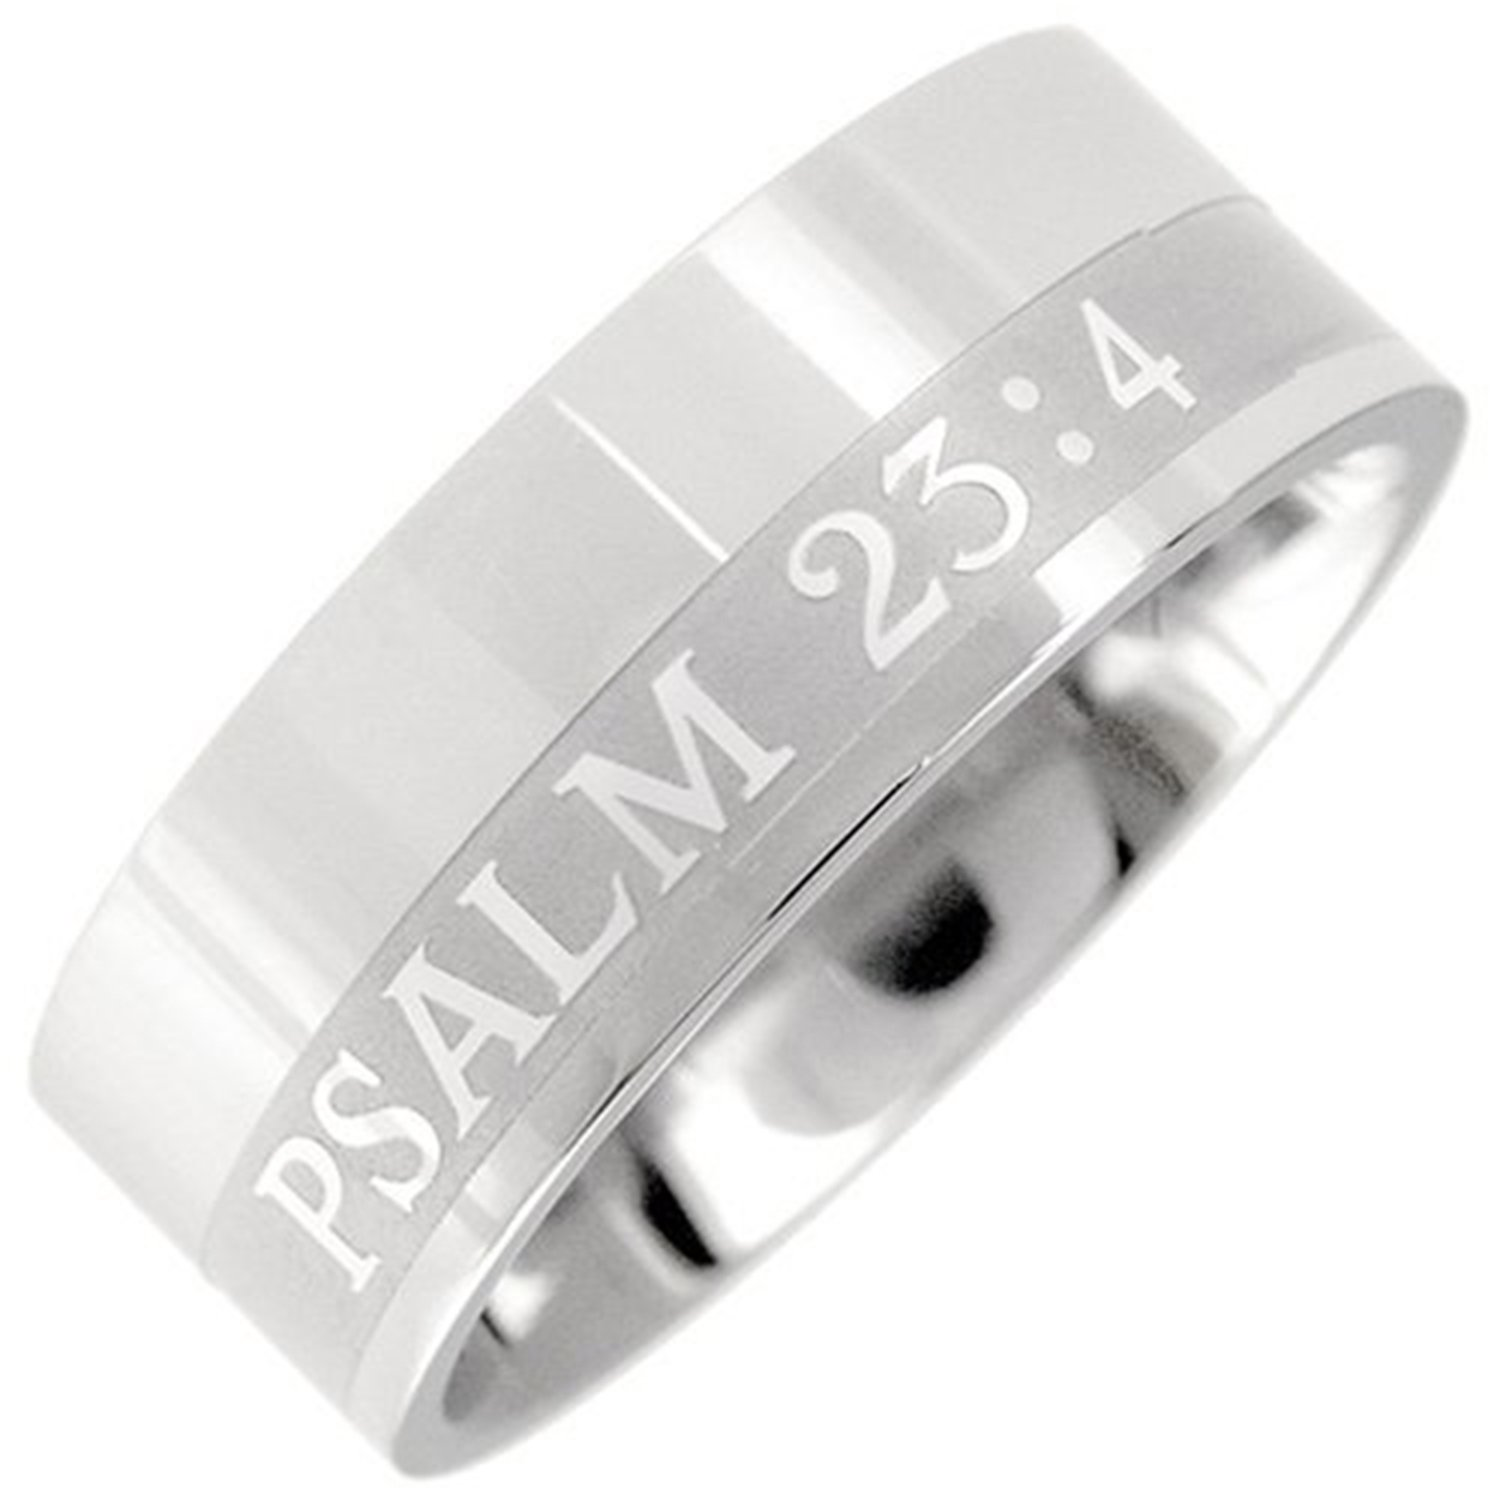 Amazon 316L Stainless Steel Christian Bible Verse Ring